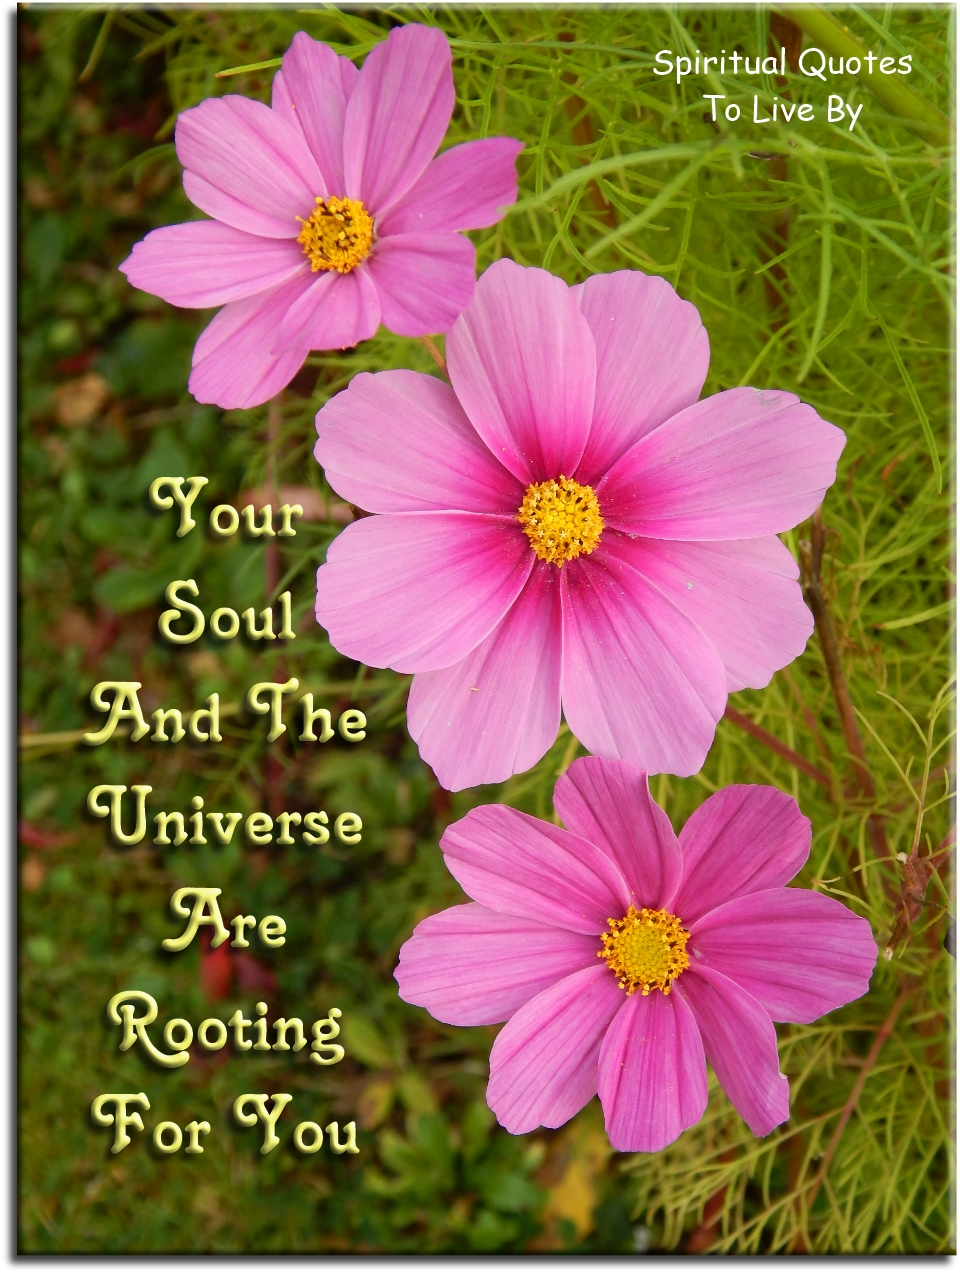 Your Soul and the Universe are rooting for you. (unknown) - Spiritual Quotes To Live By